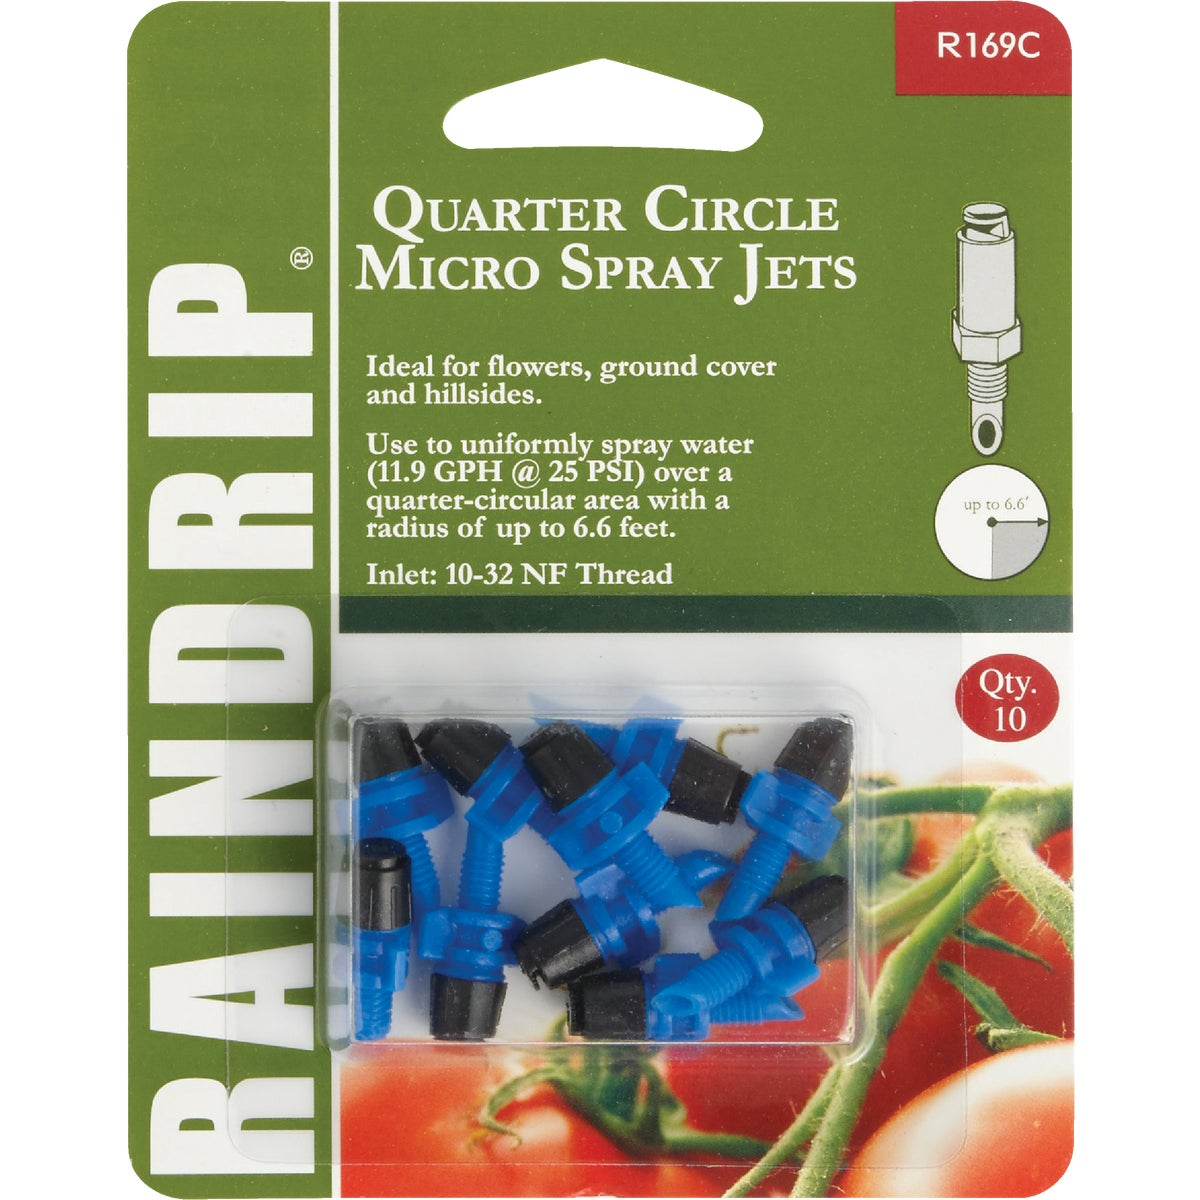 QTR CIR MICRO SPRAY JET - R169CT by Raindrip Inc